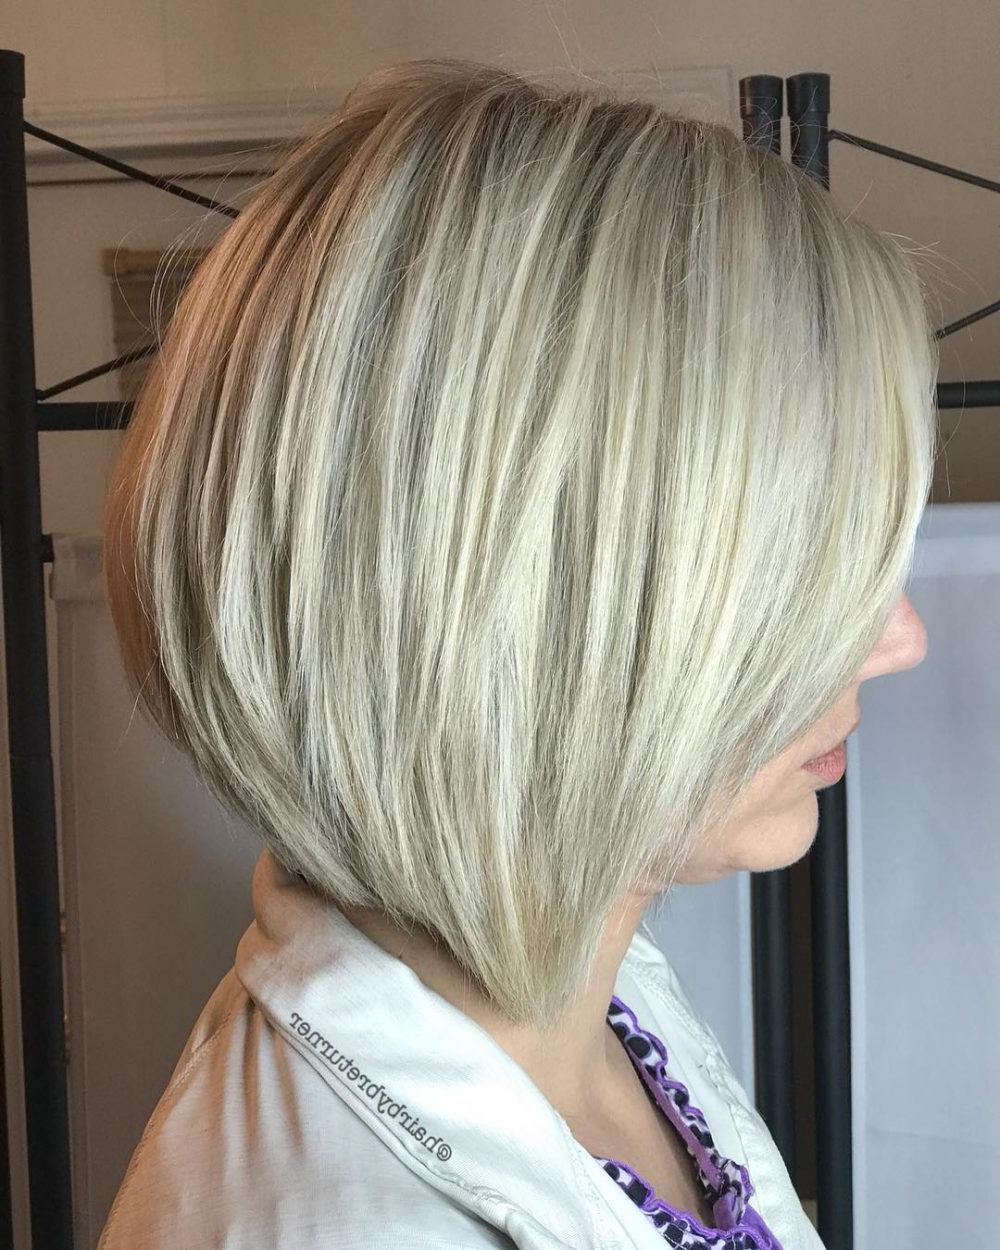 42 Sexiest Short Hairstyles For Women Over 40 In 2019 Within Most Up To Date Undercut Medium Hairstyles For Women (Gallery 20 of 20)